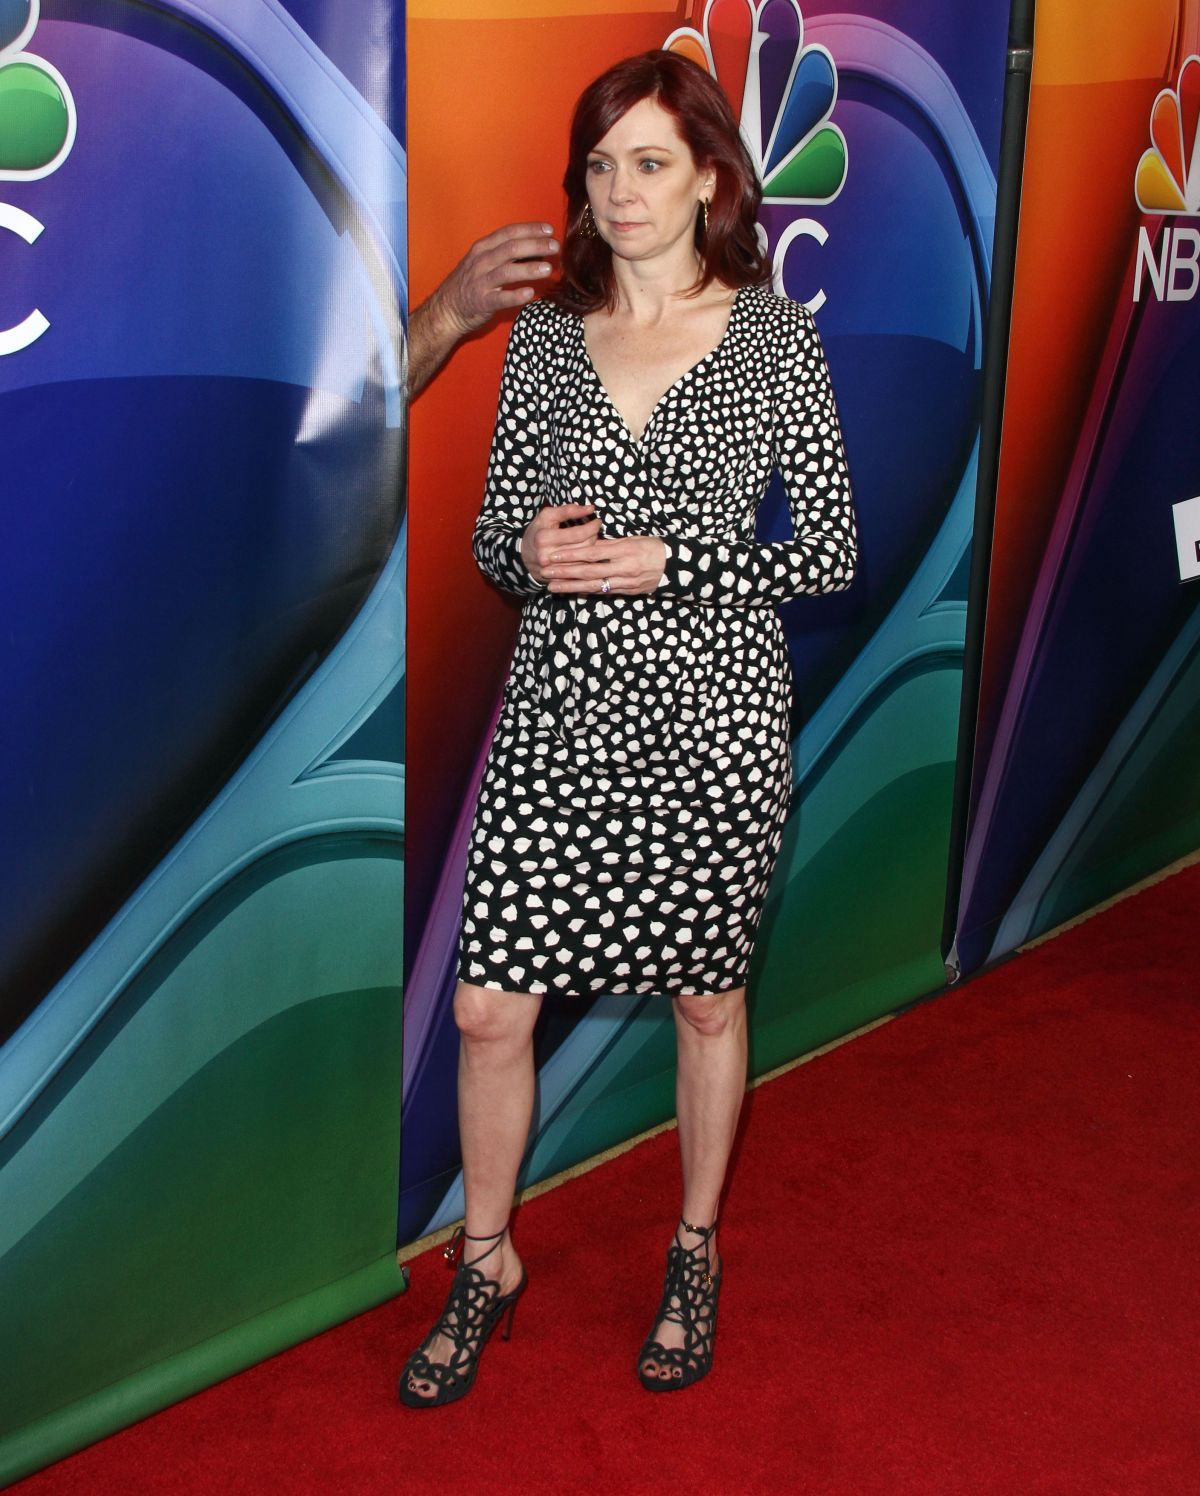 CARRIE PRESTON at NBC/Universal 2016 Winter TCA Tour in Pasadena 01/13/2016